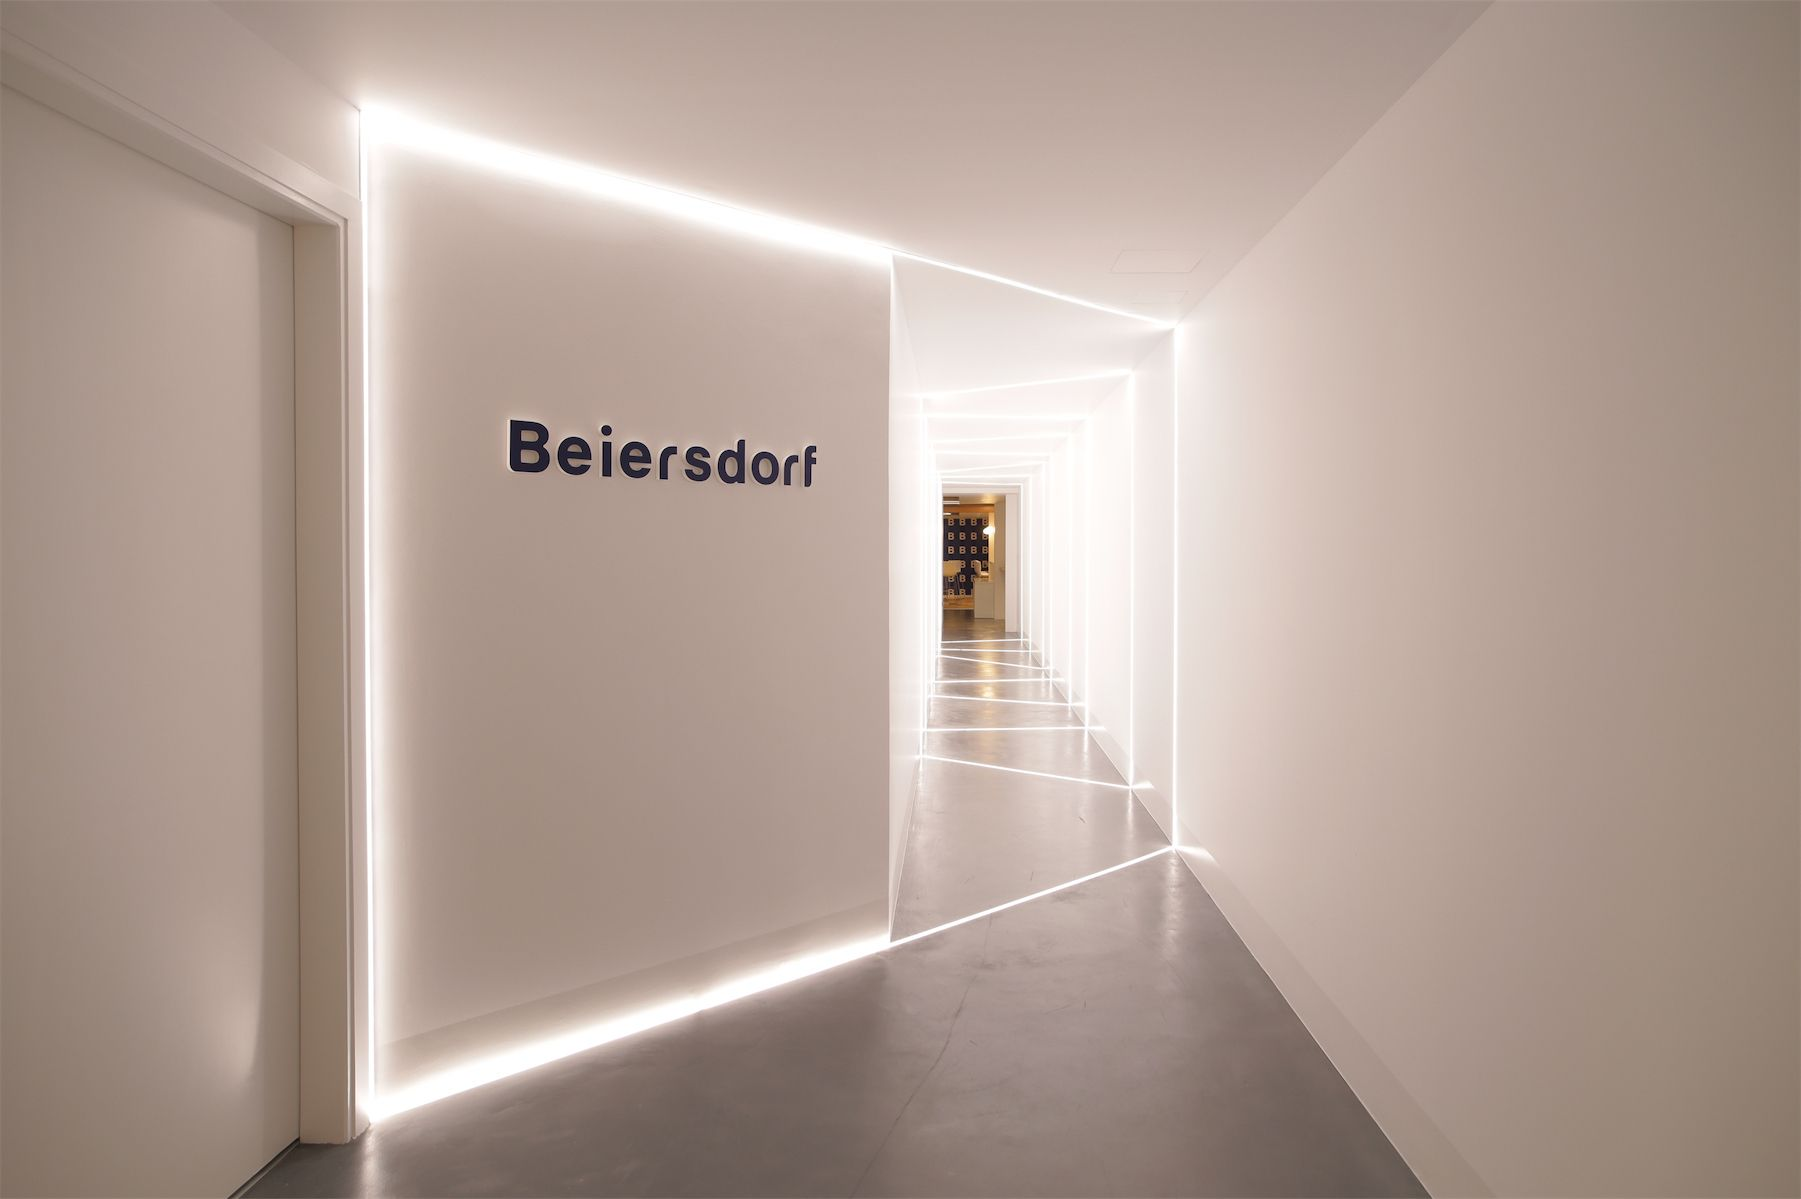 isle on the beiersdorf offices in athens greece with led stripes incorporated into the concrete - Incorporating Leds Into Interior Design